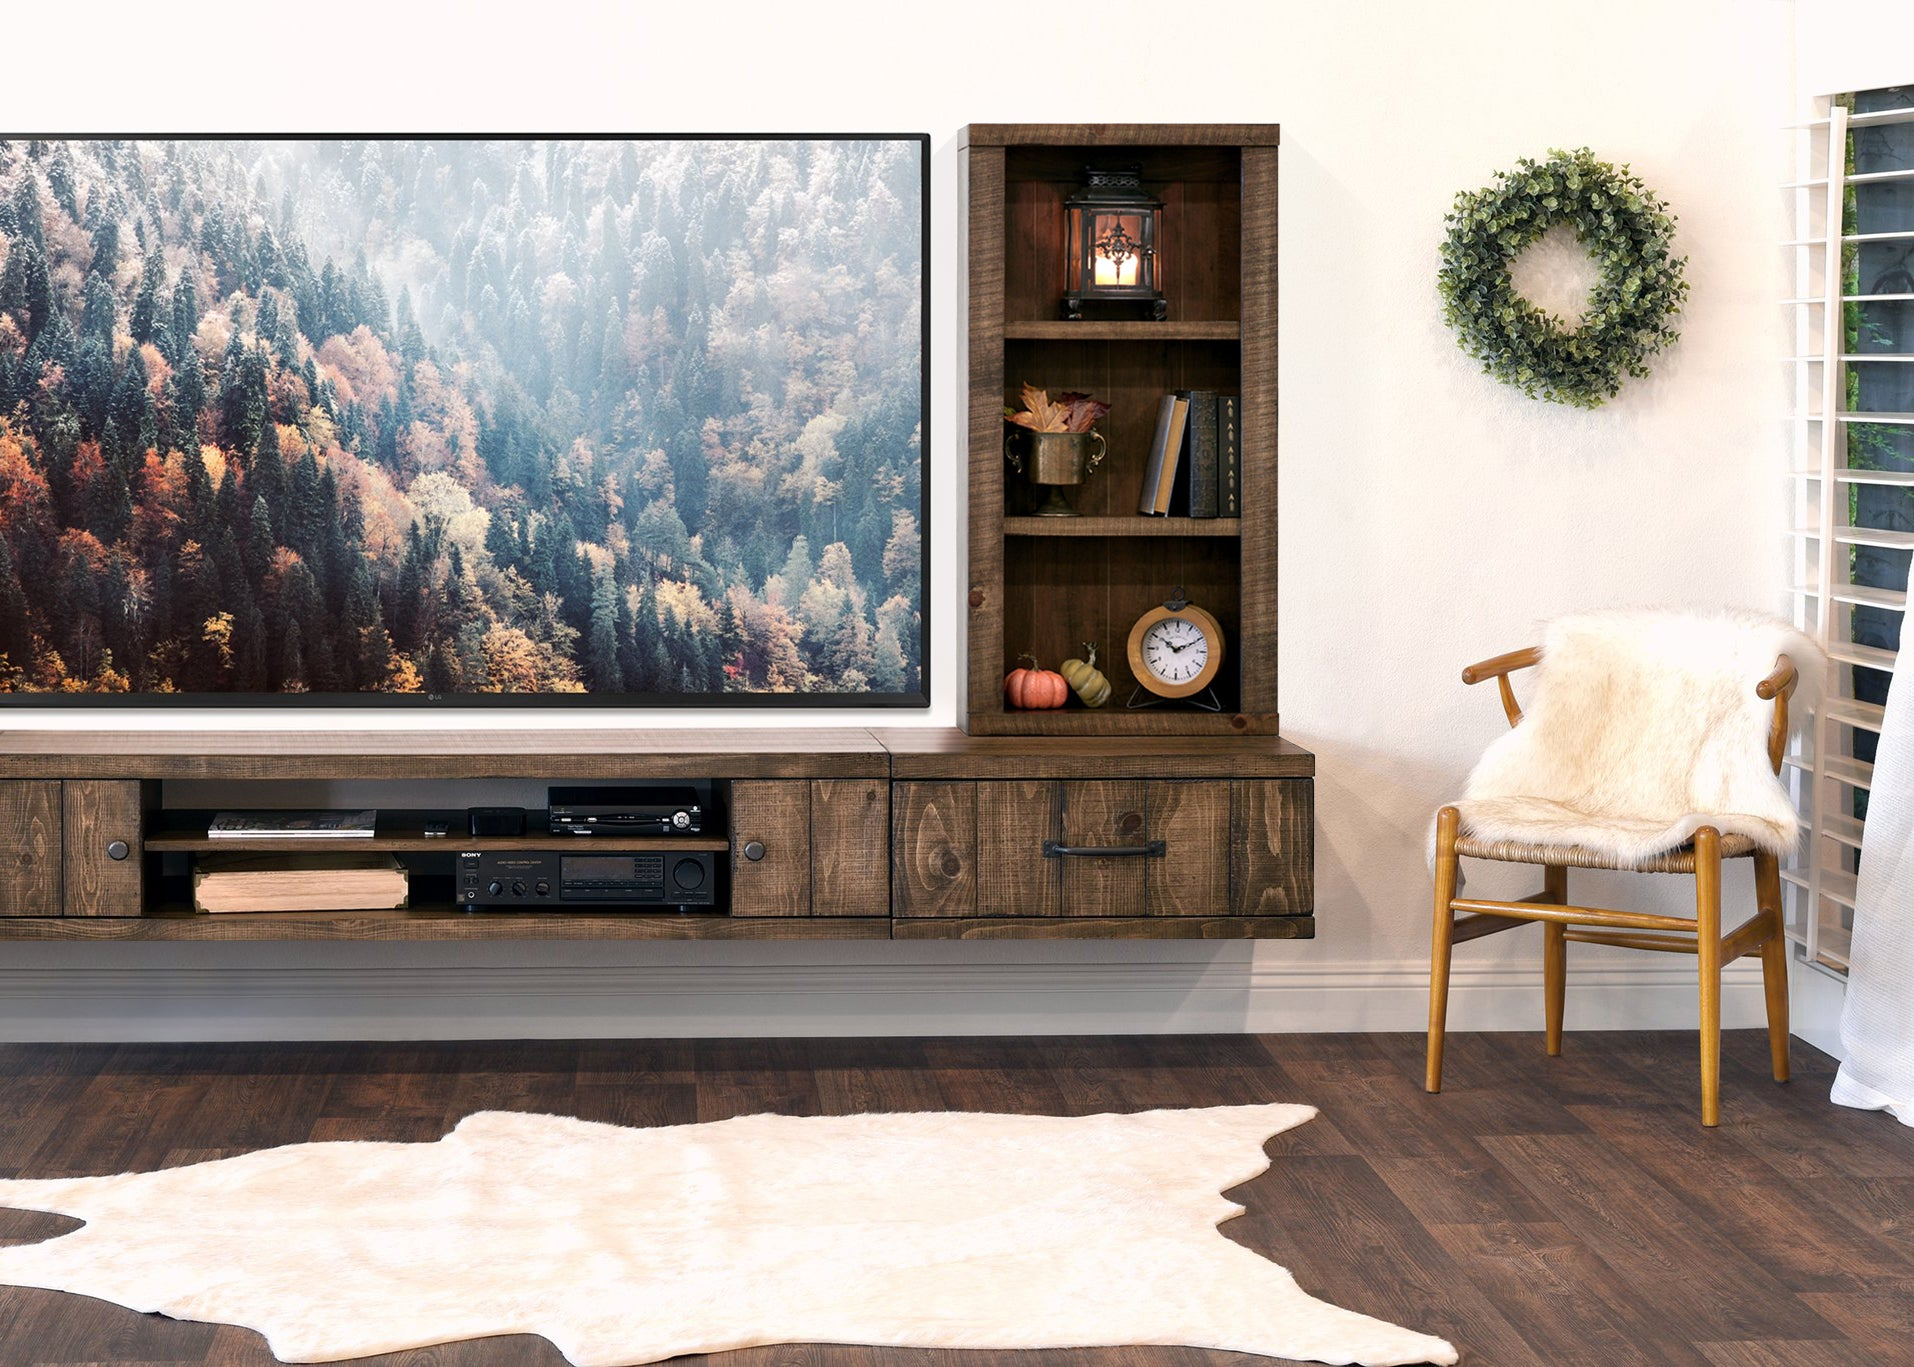 Farmhouse Floating TV Stand Wall Mount Entertainment Center - Spice